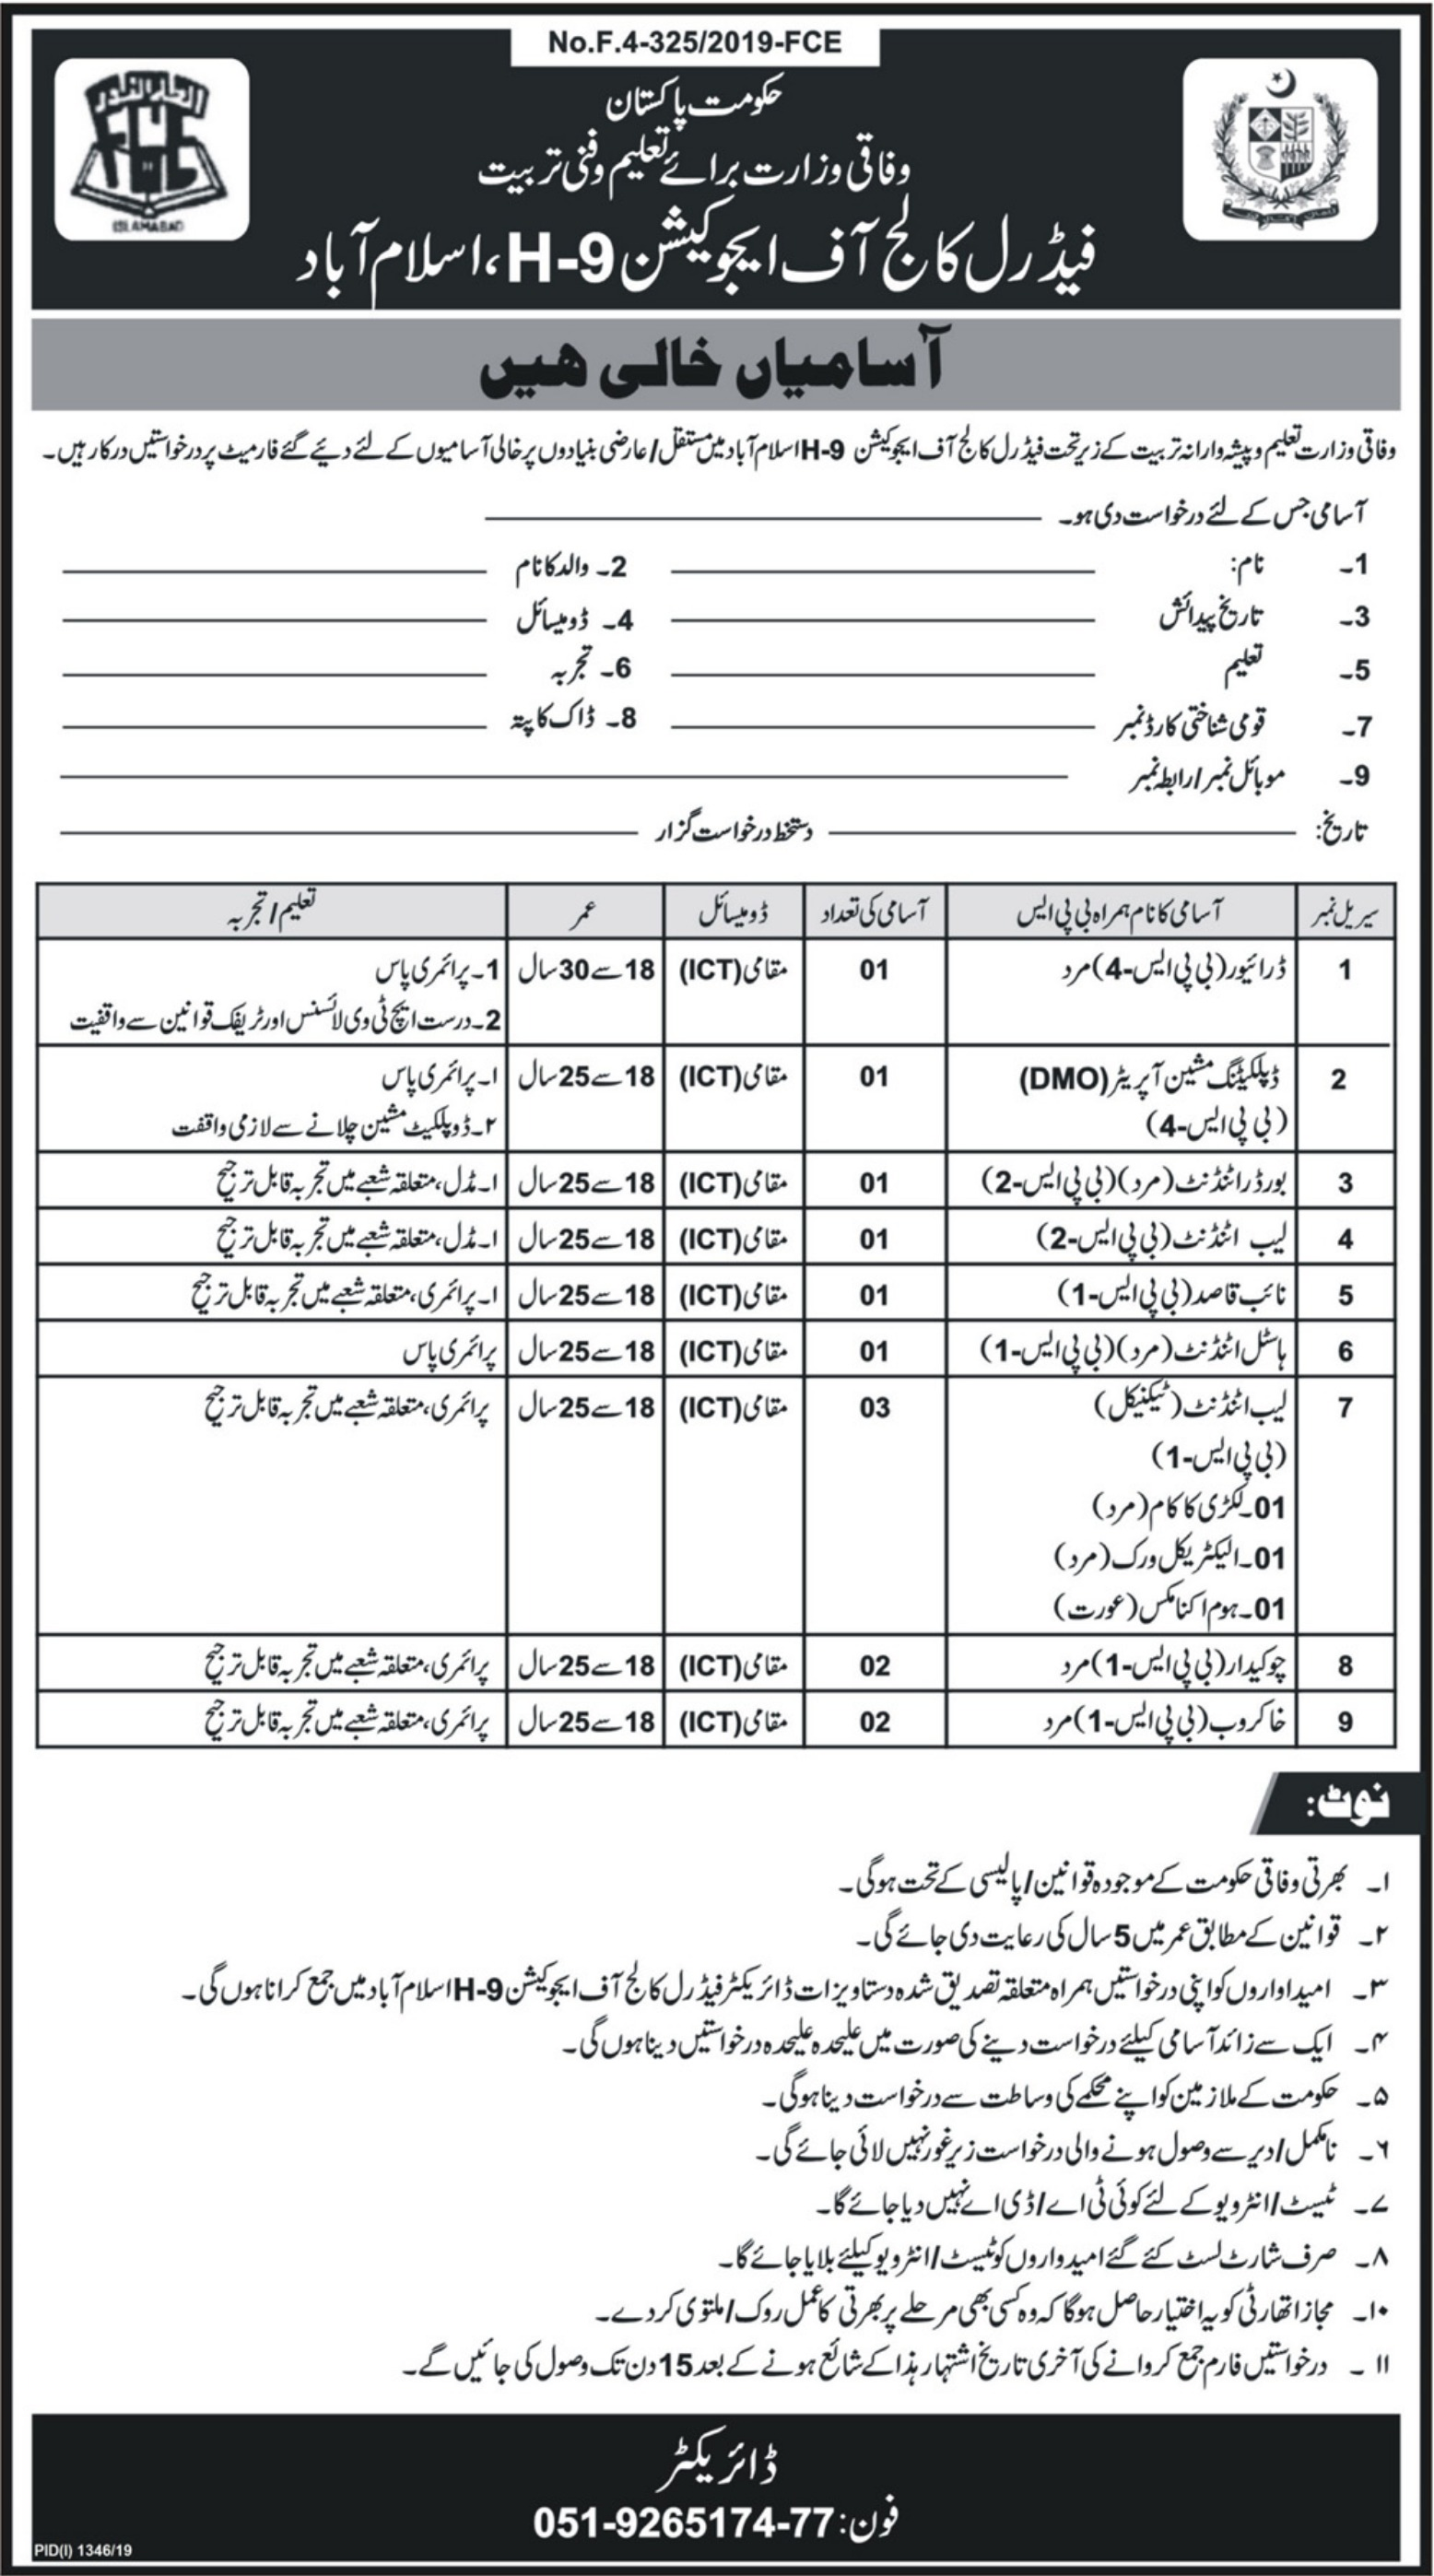 Federal College Of Education Islamabad Jobs 2019 Paperpk Jobs